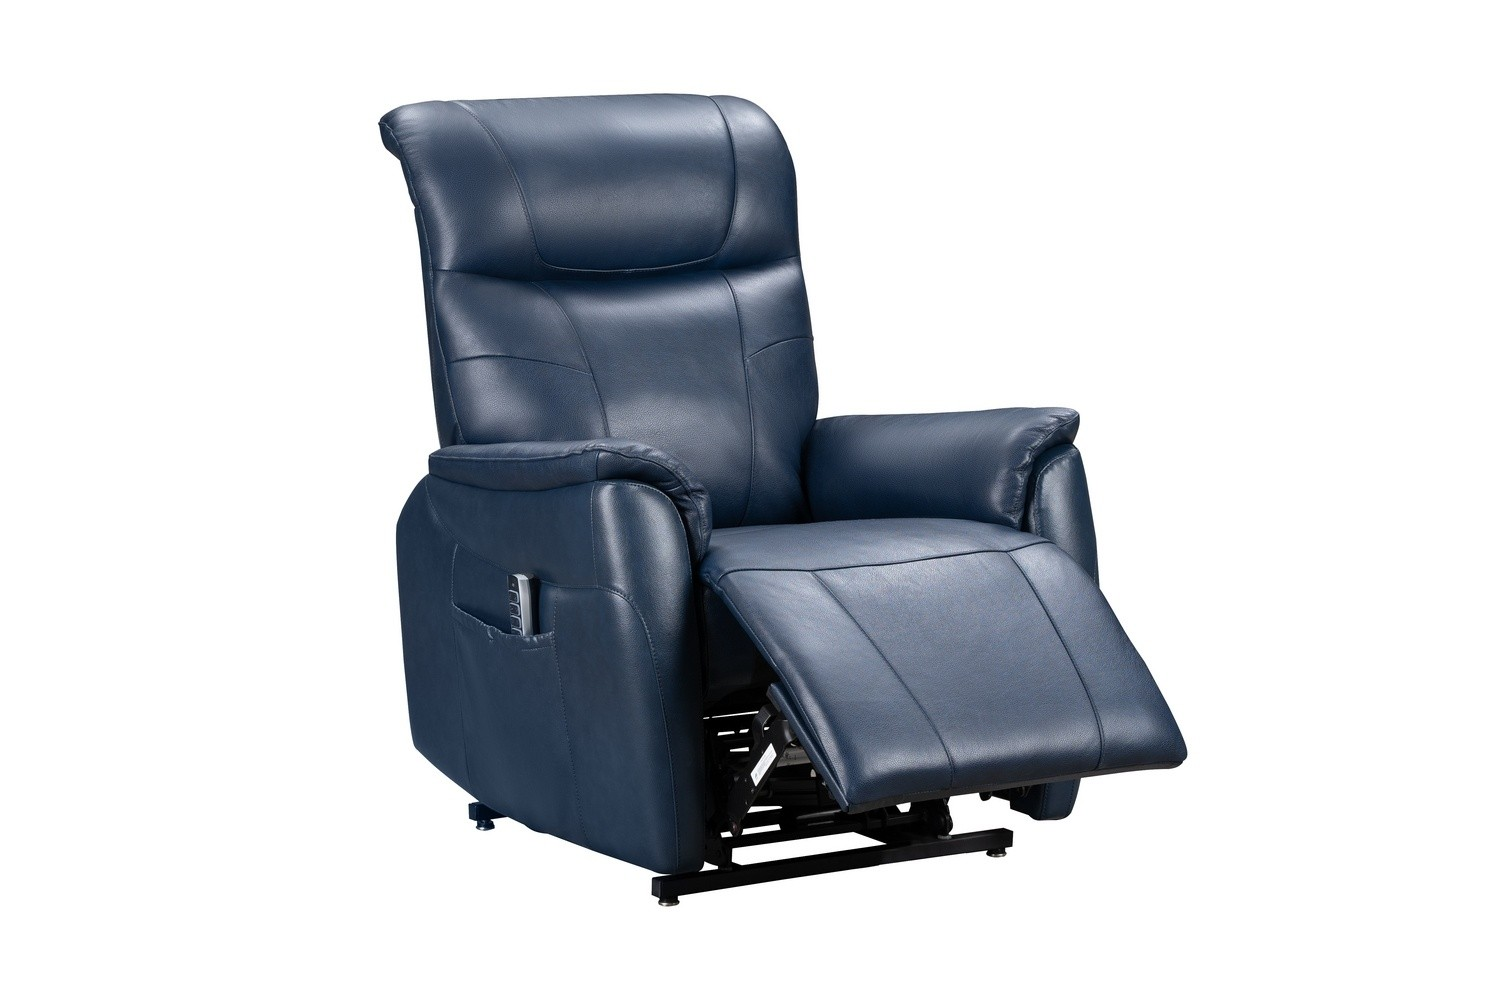 Barcalounger Leighton Lift Chair Recliner Chair with Power Head Rest, Power Lumbar and Lay Flat Mechanism - Marco Navy Blue/Leather Match